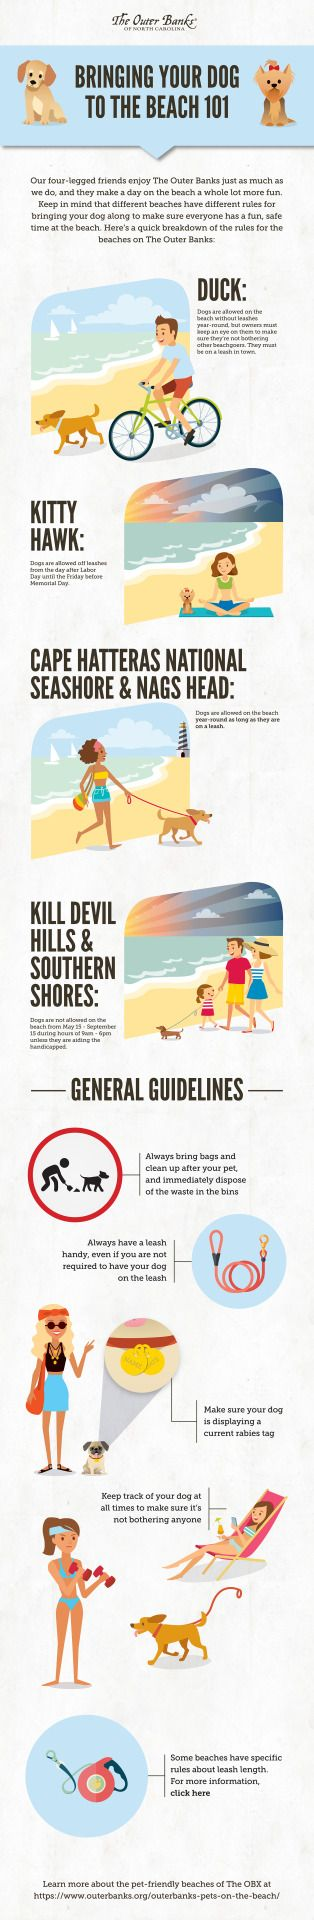 Bringing Your Dog To The Beaches On The Outer Banks 101